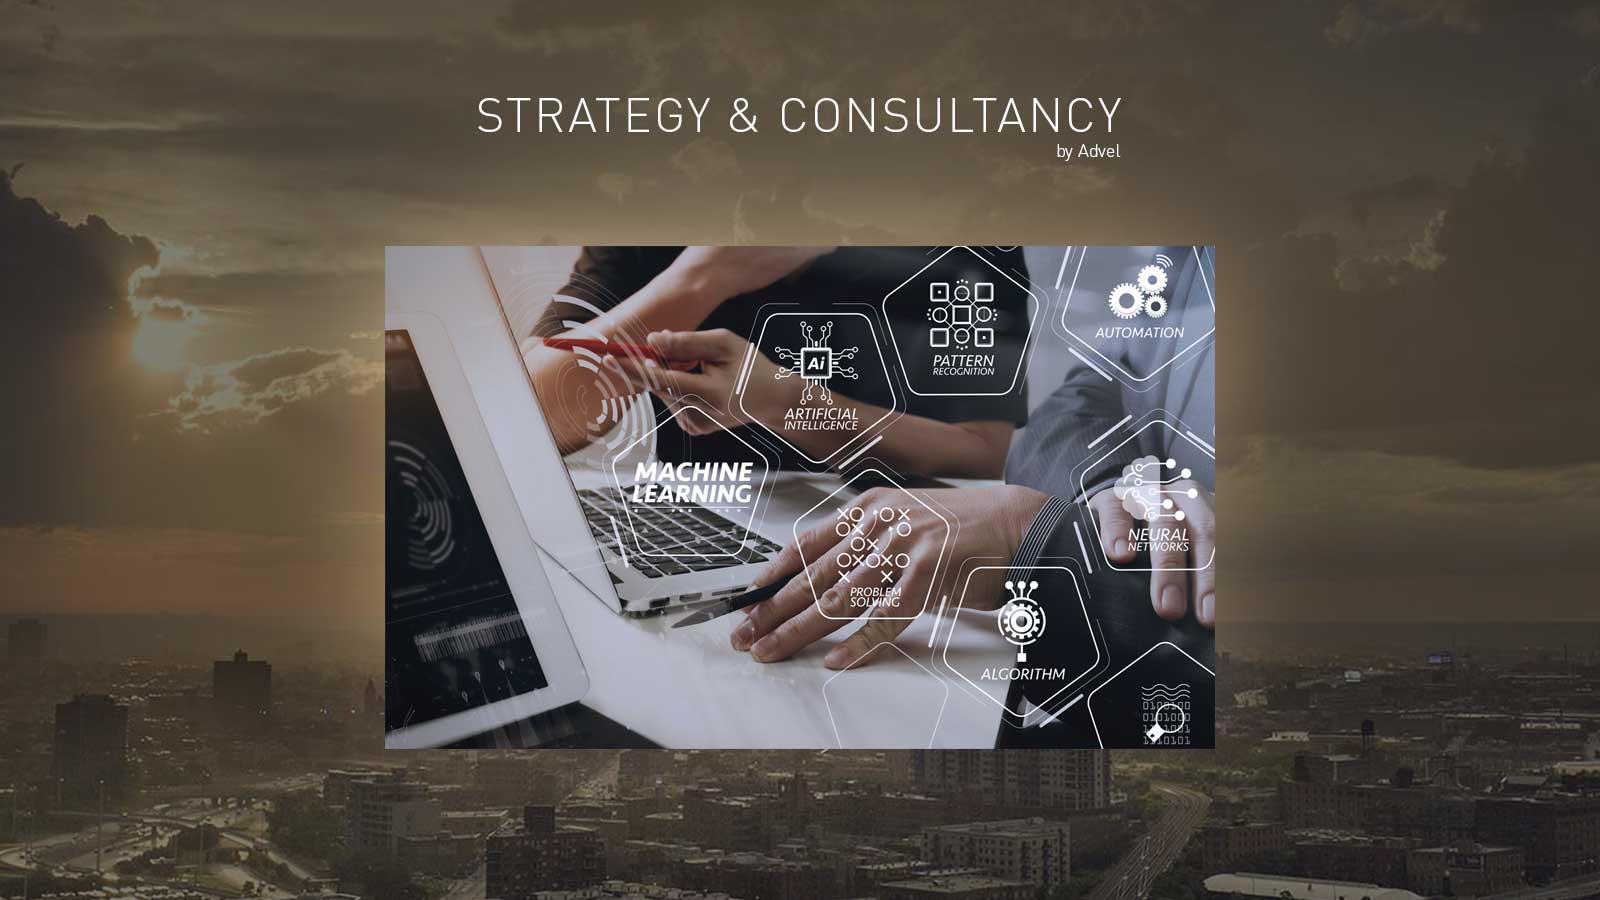 Strategy & Consultancy